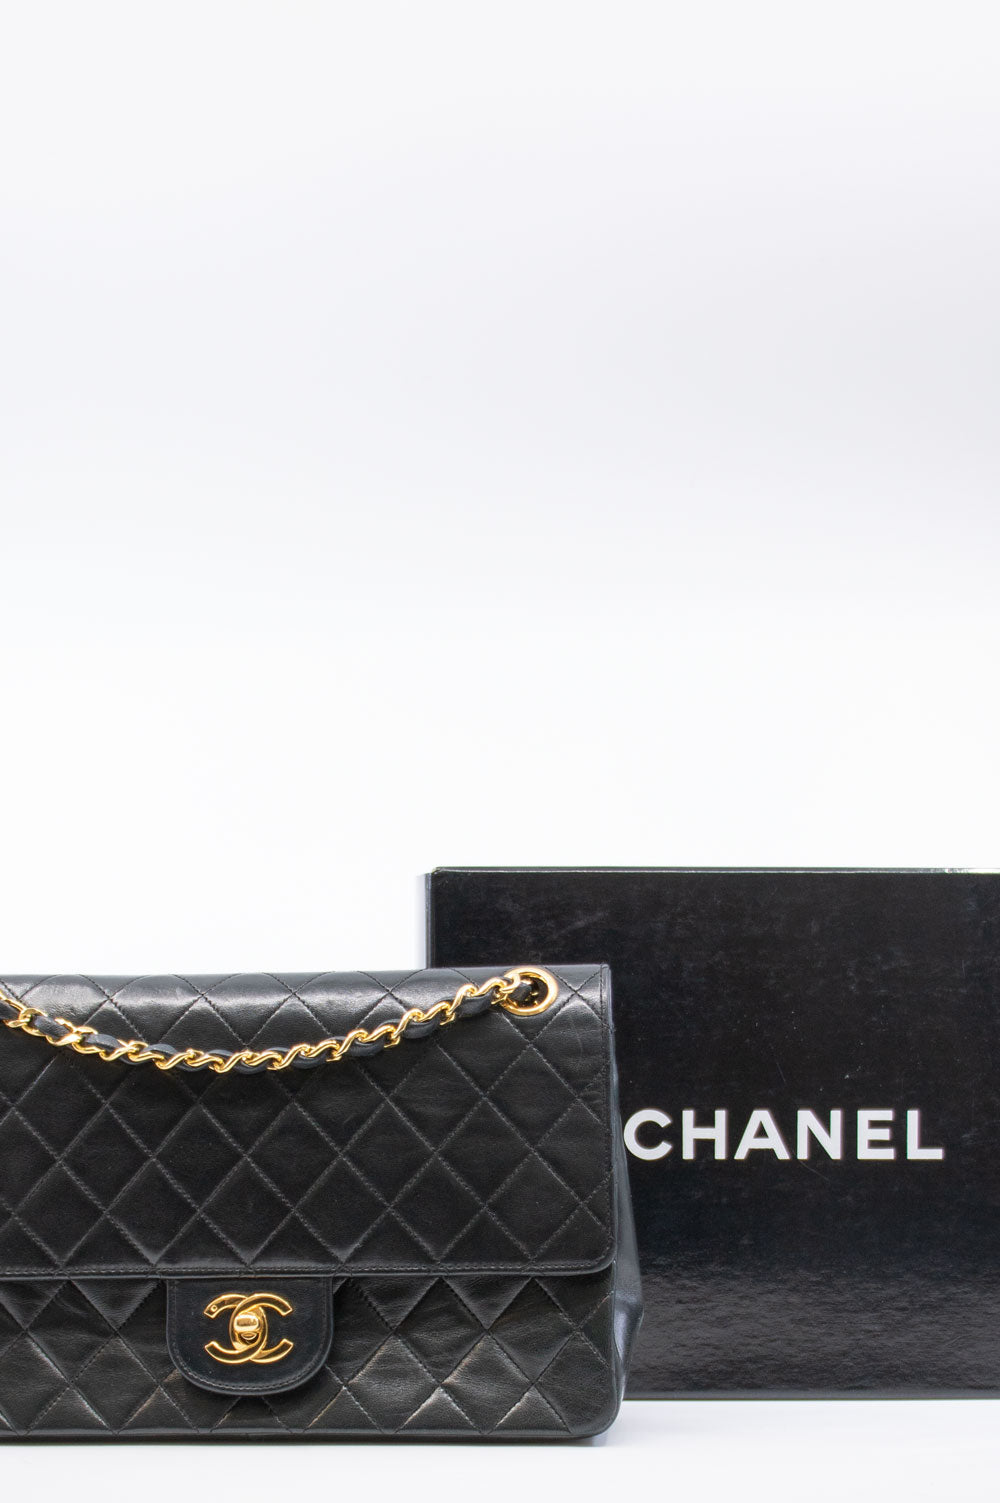 CHANEL Vintage Coco Double Flap Bag